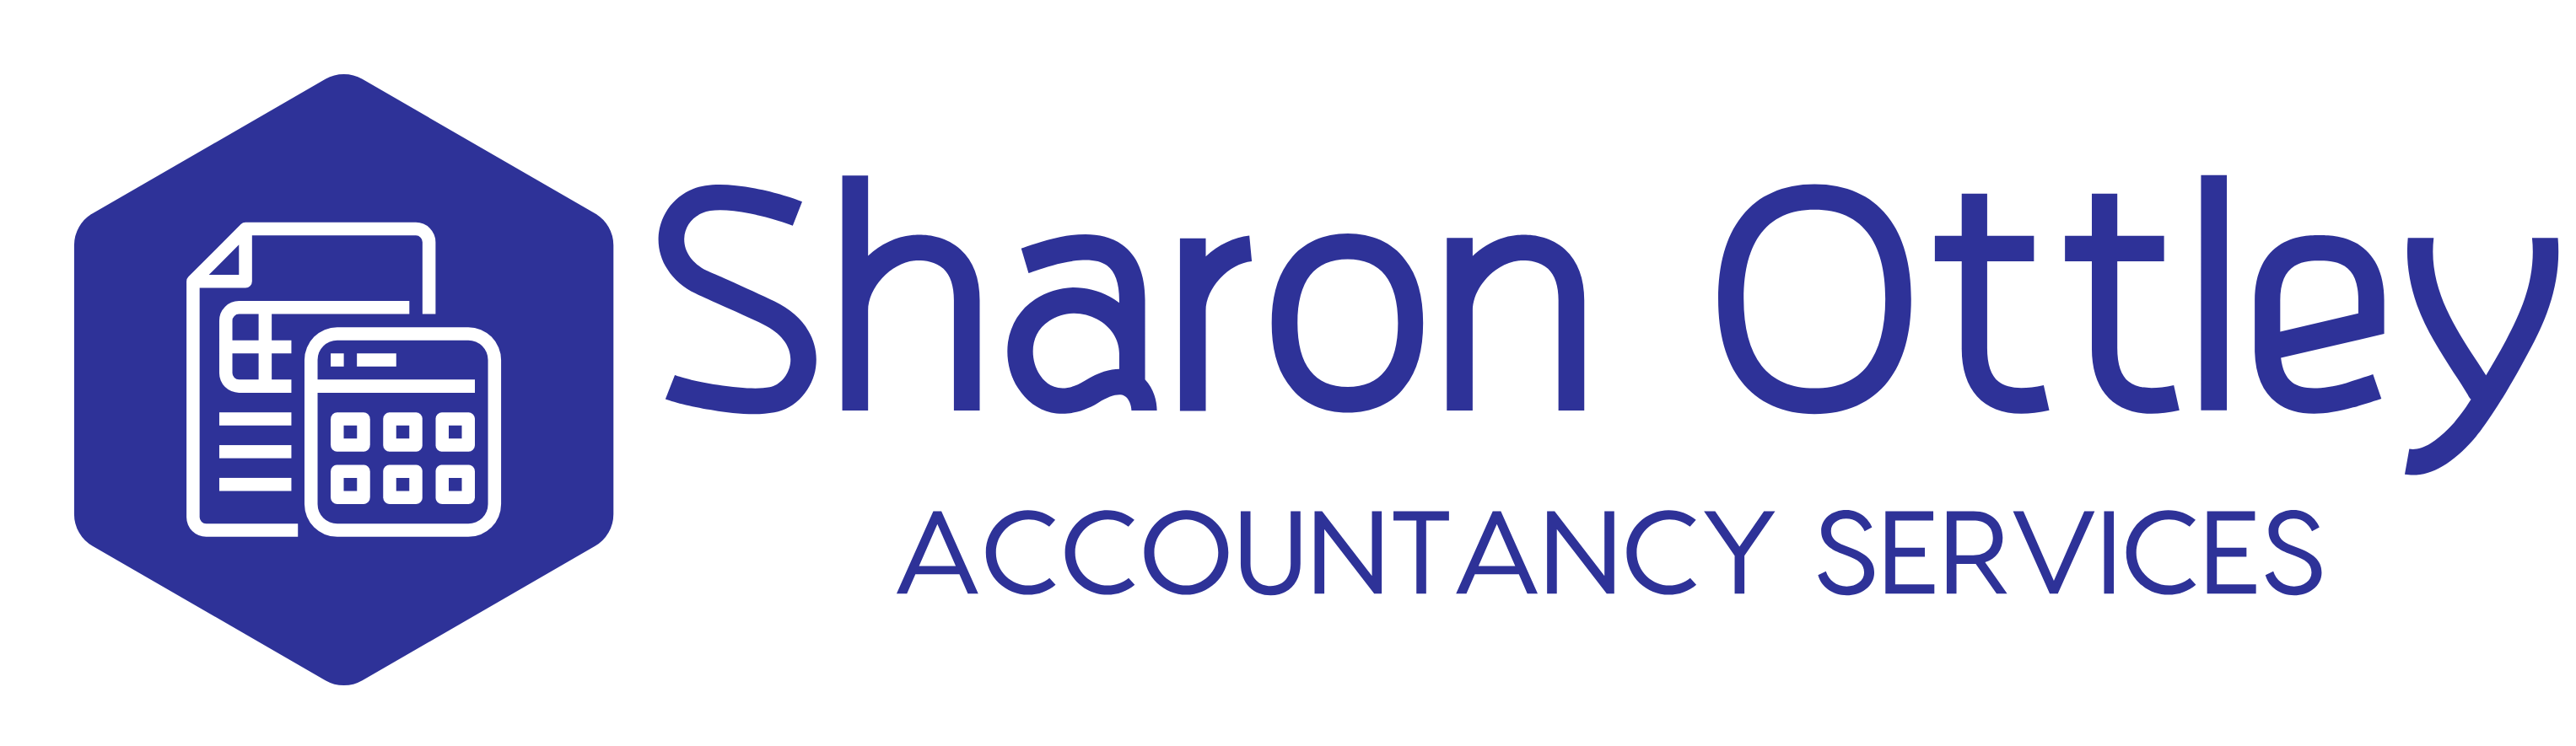 Sharon Ottley Accountancy Services